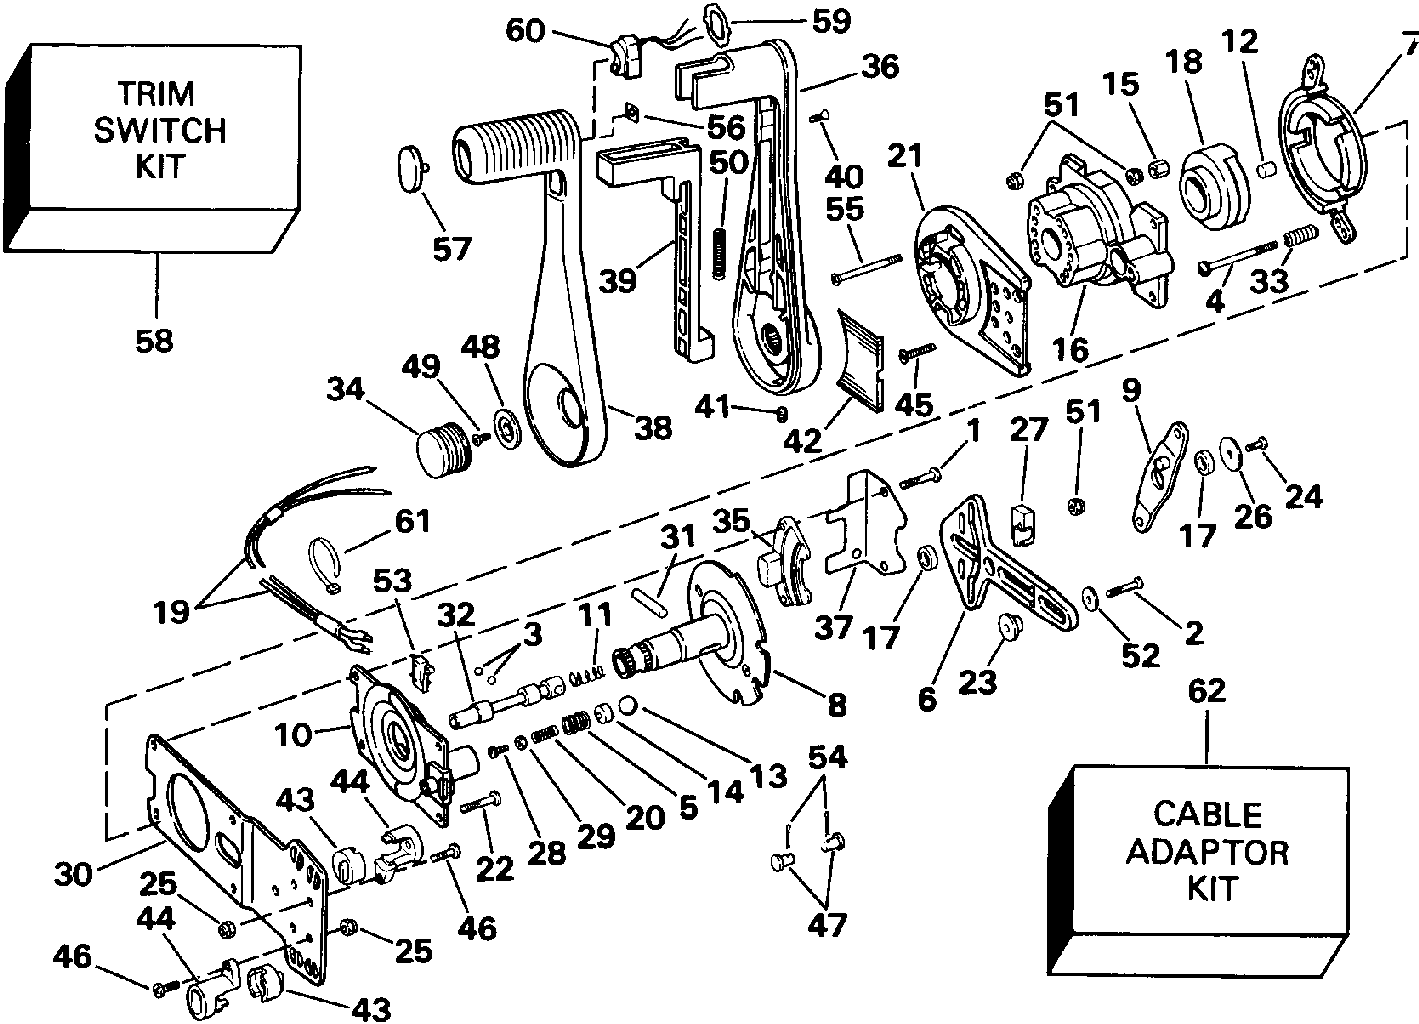 1992 omc outboard wiring harness